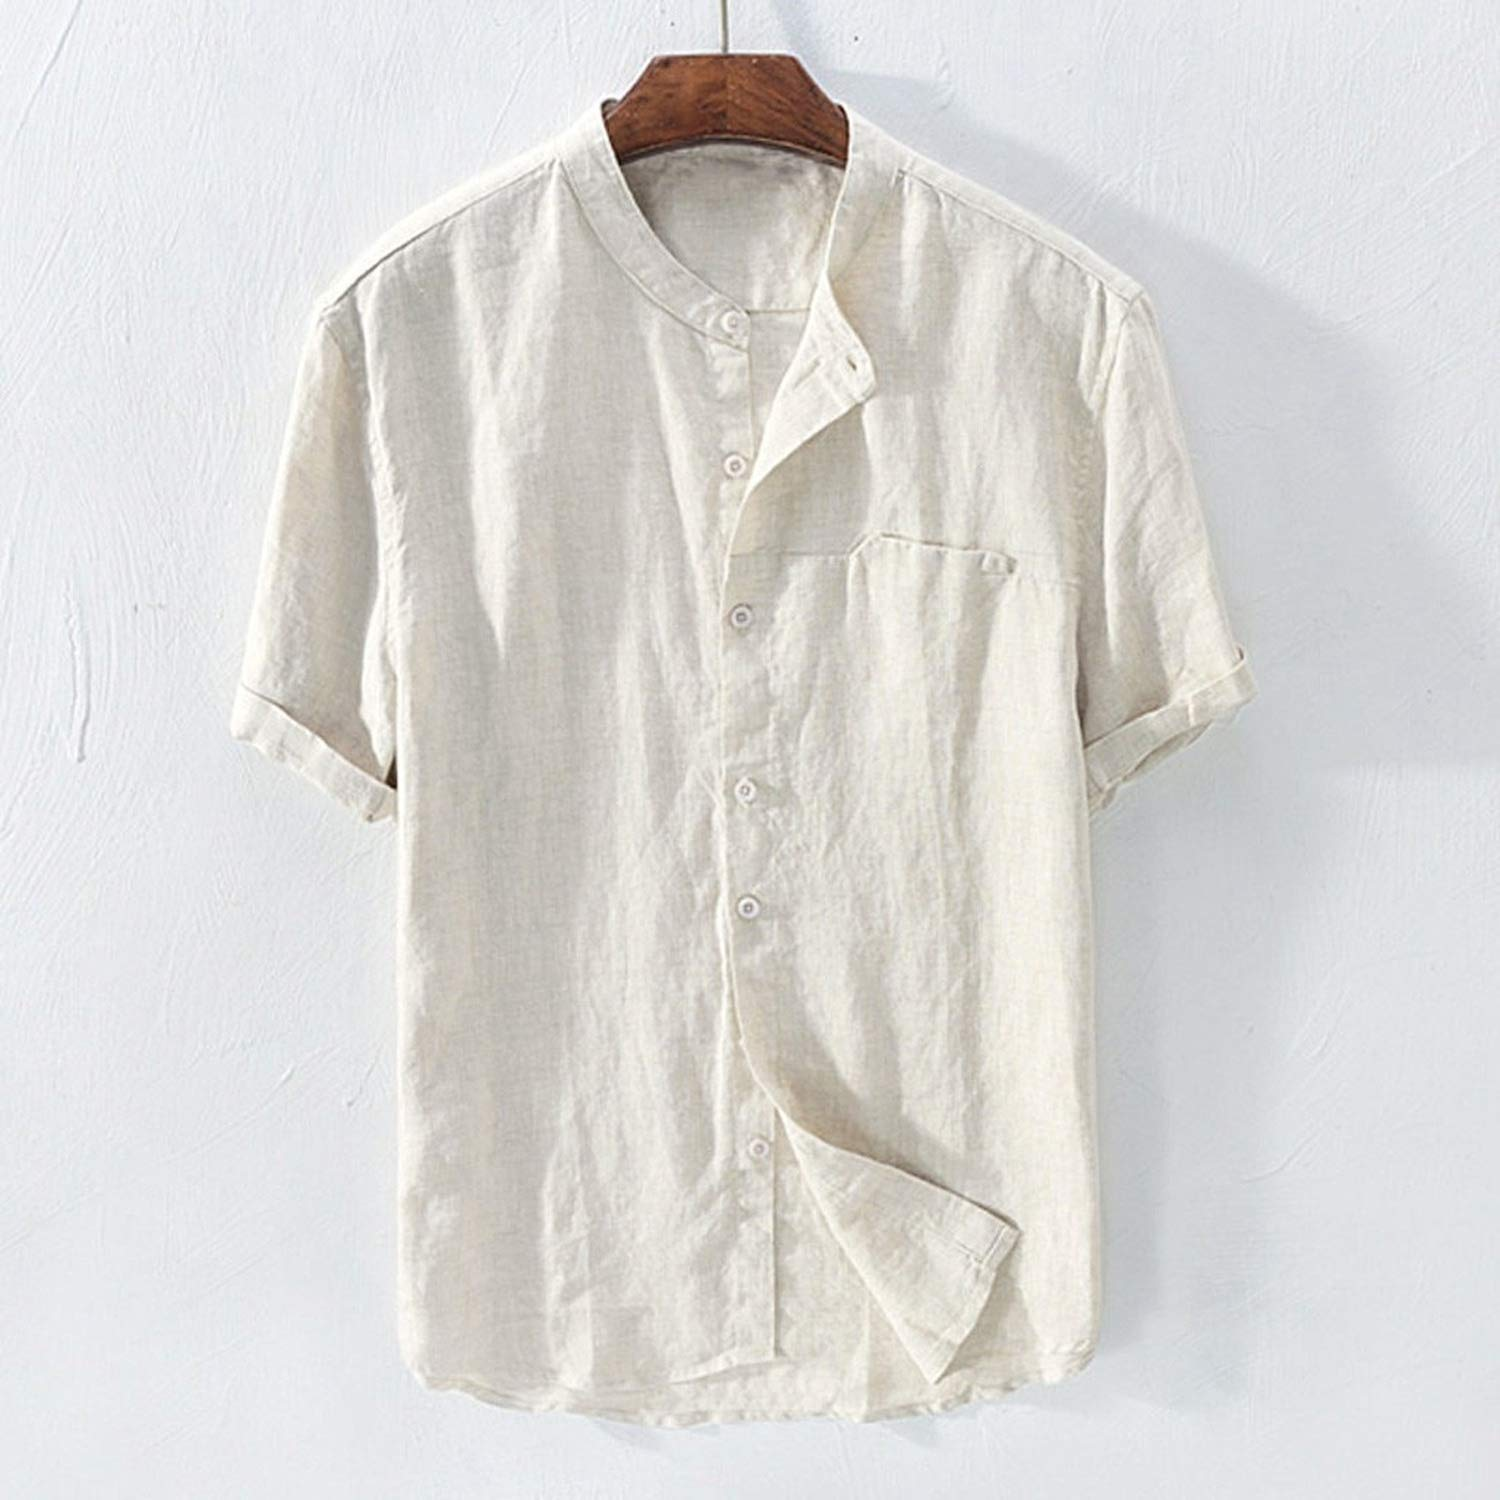 Shirt Men Summer Short-Sleeved Baggy Cotton Linen Solid Button Beach Shirts A17